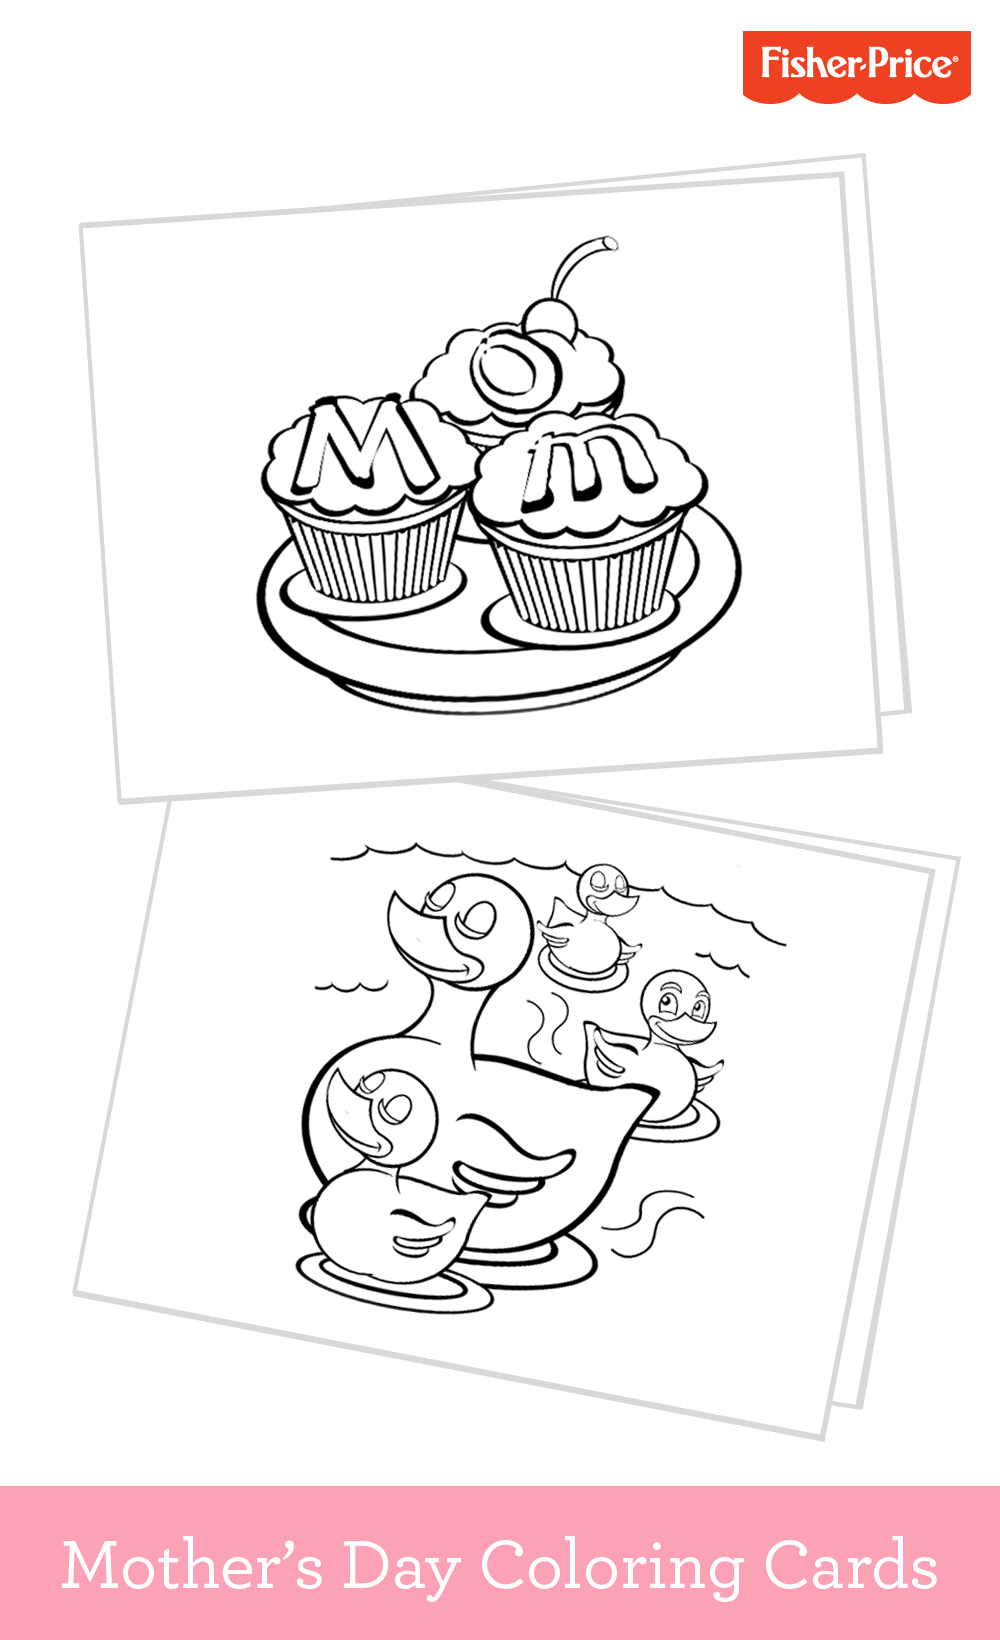 Free Printable Motheru0027s Day Cards. Surprise Mom With A Special Homemade Card  She Will Treasure.